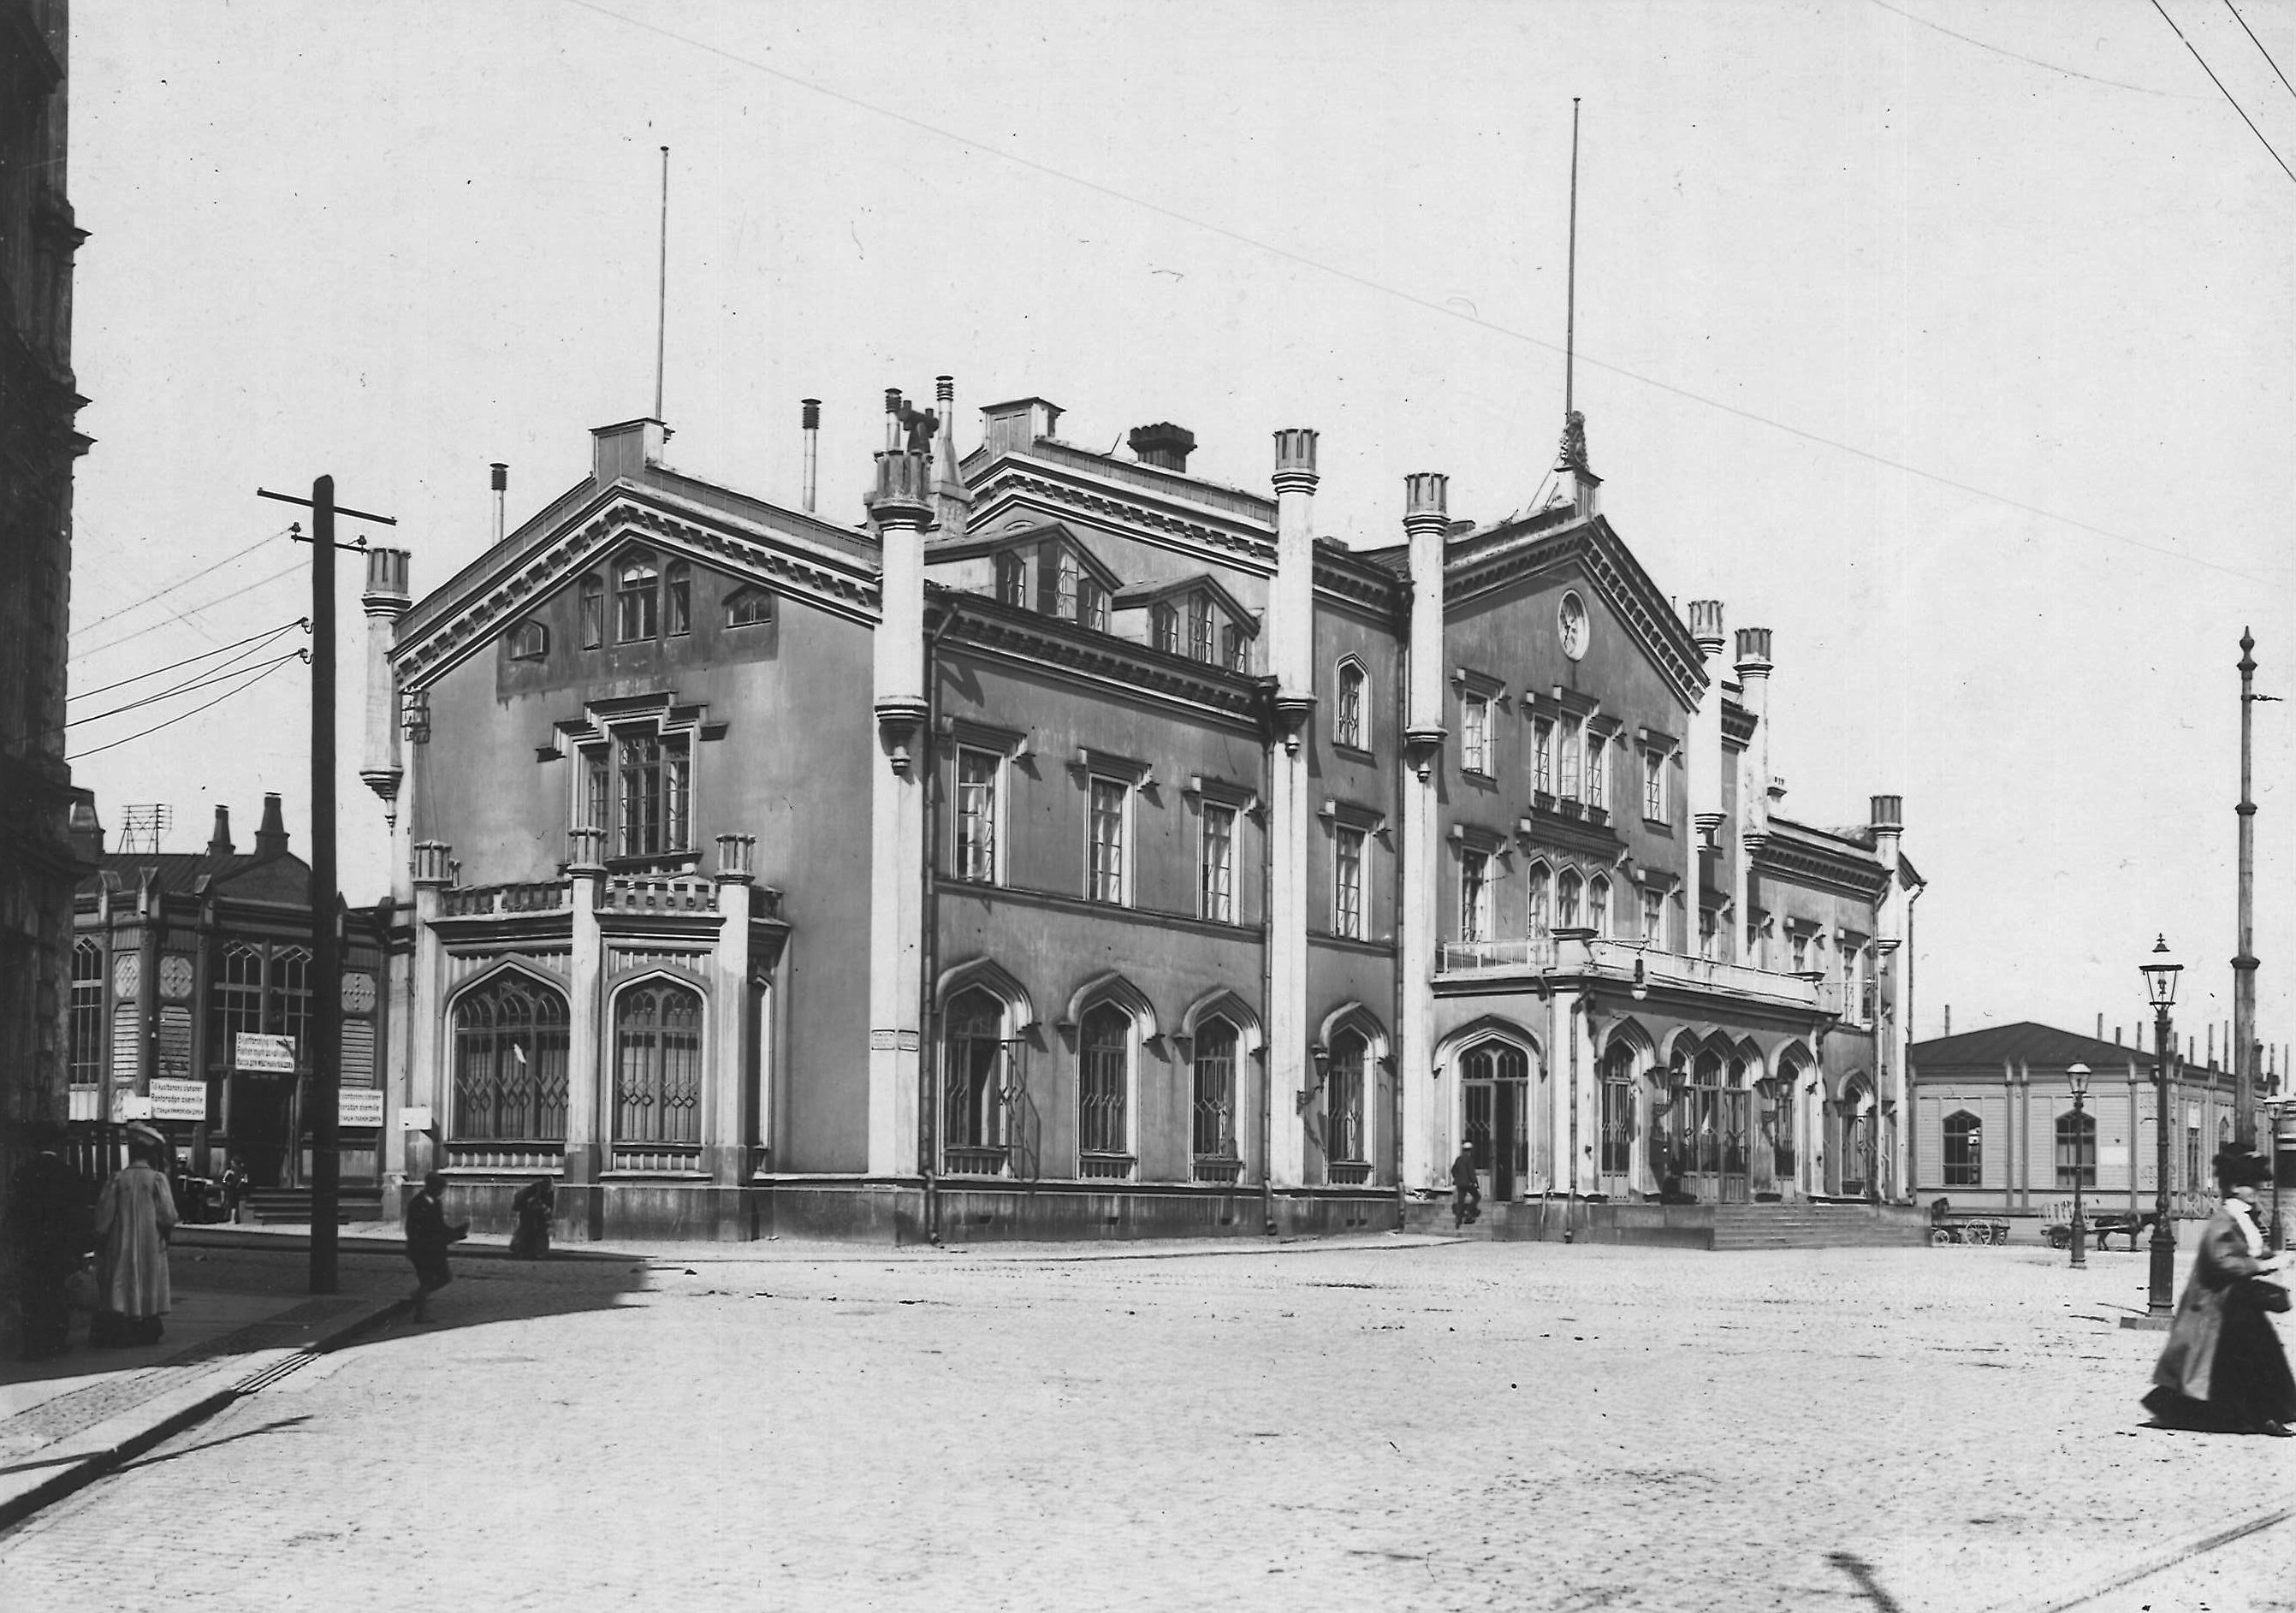 Gare de Helsinki, photo anonyme, collection priveì